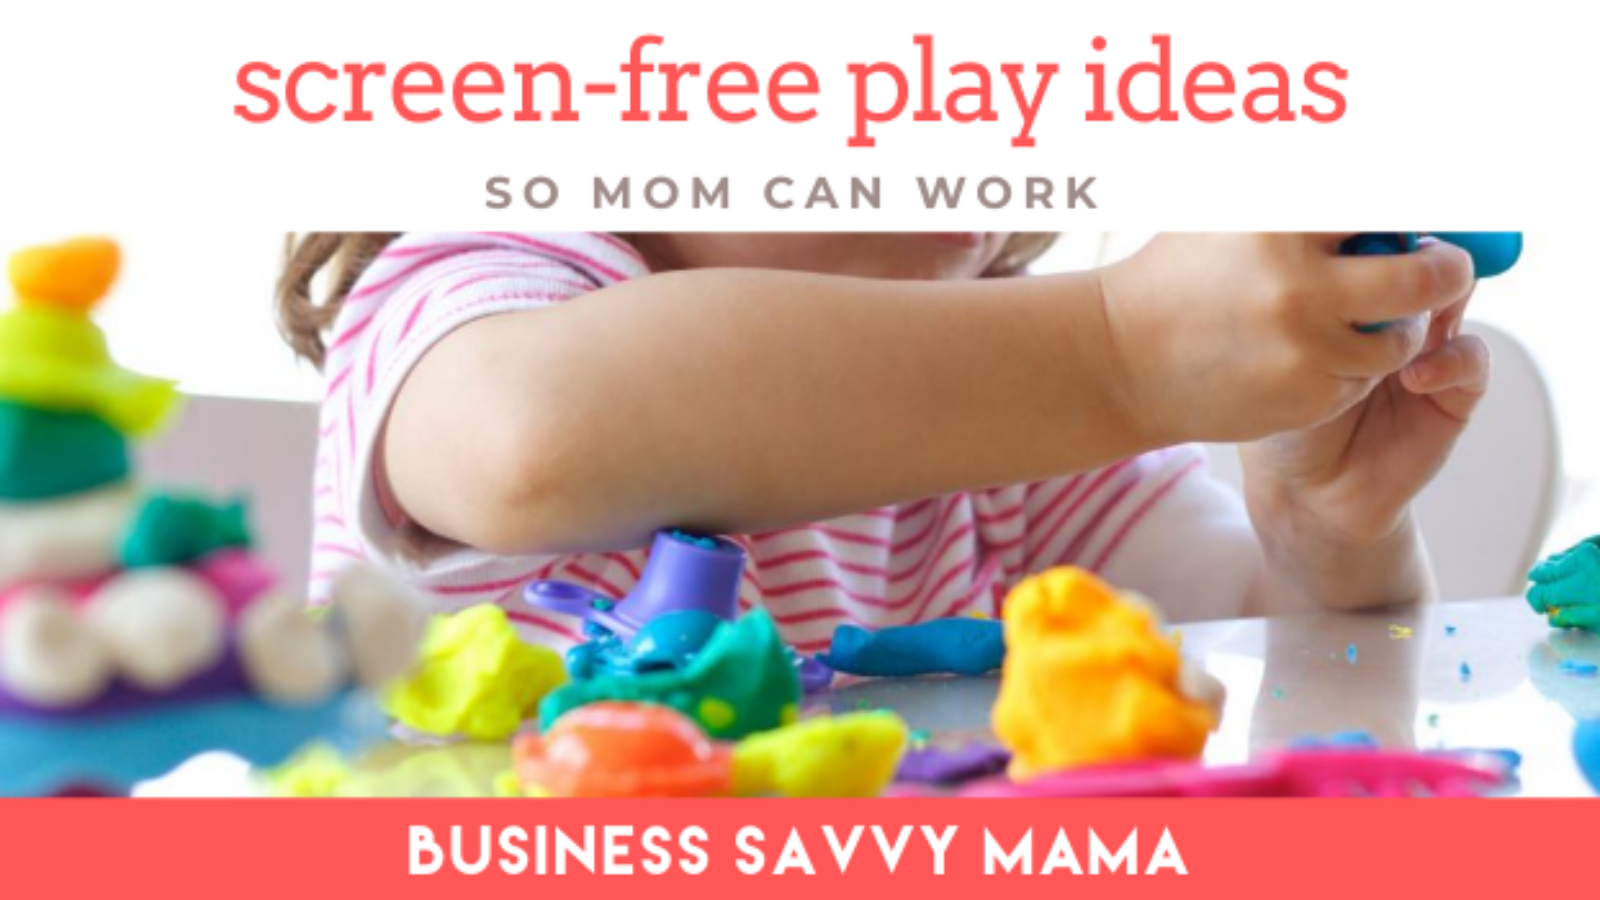 Screen-free play ideas